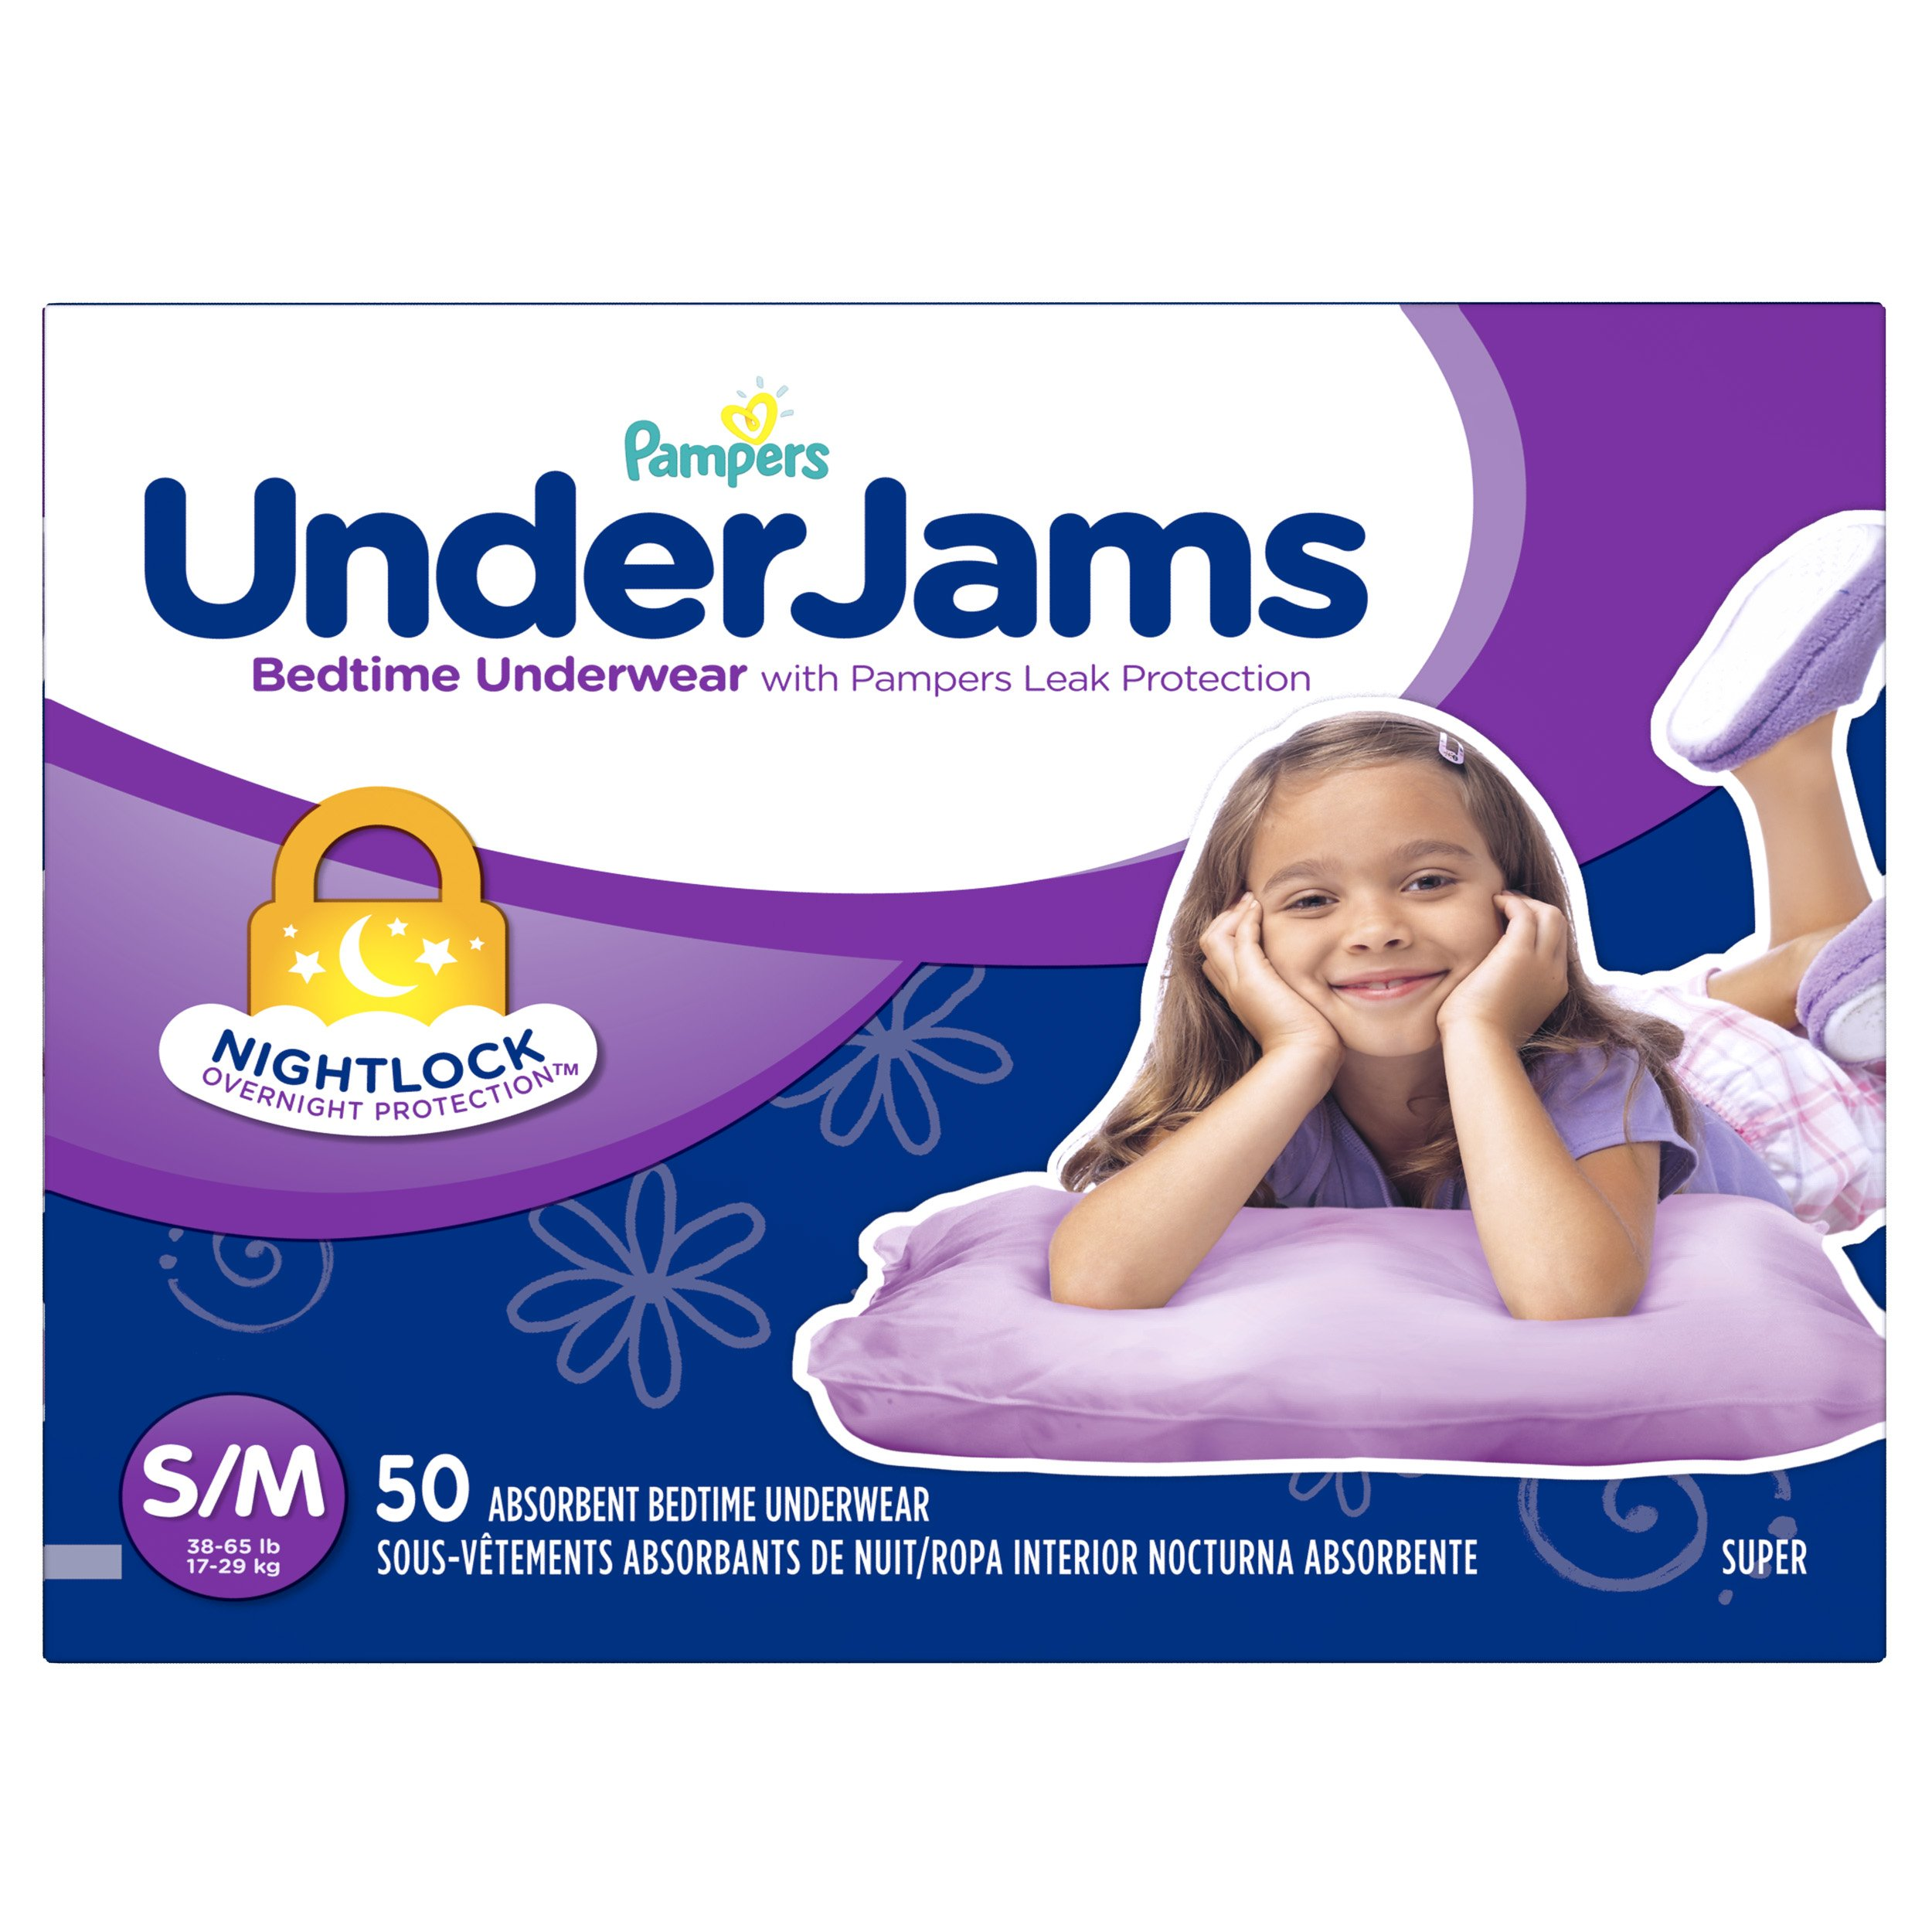 Pampers Underjams 女宝宝床上用品,小号/中号尿布,50 片 女孩 Size S/M, 50 Count 50